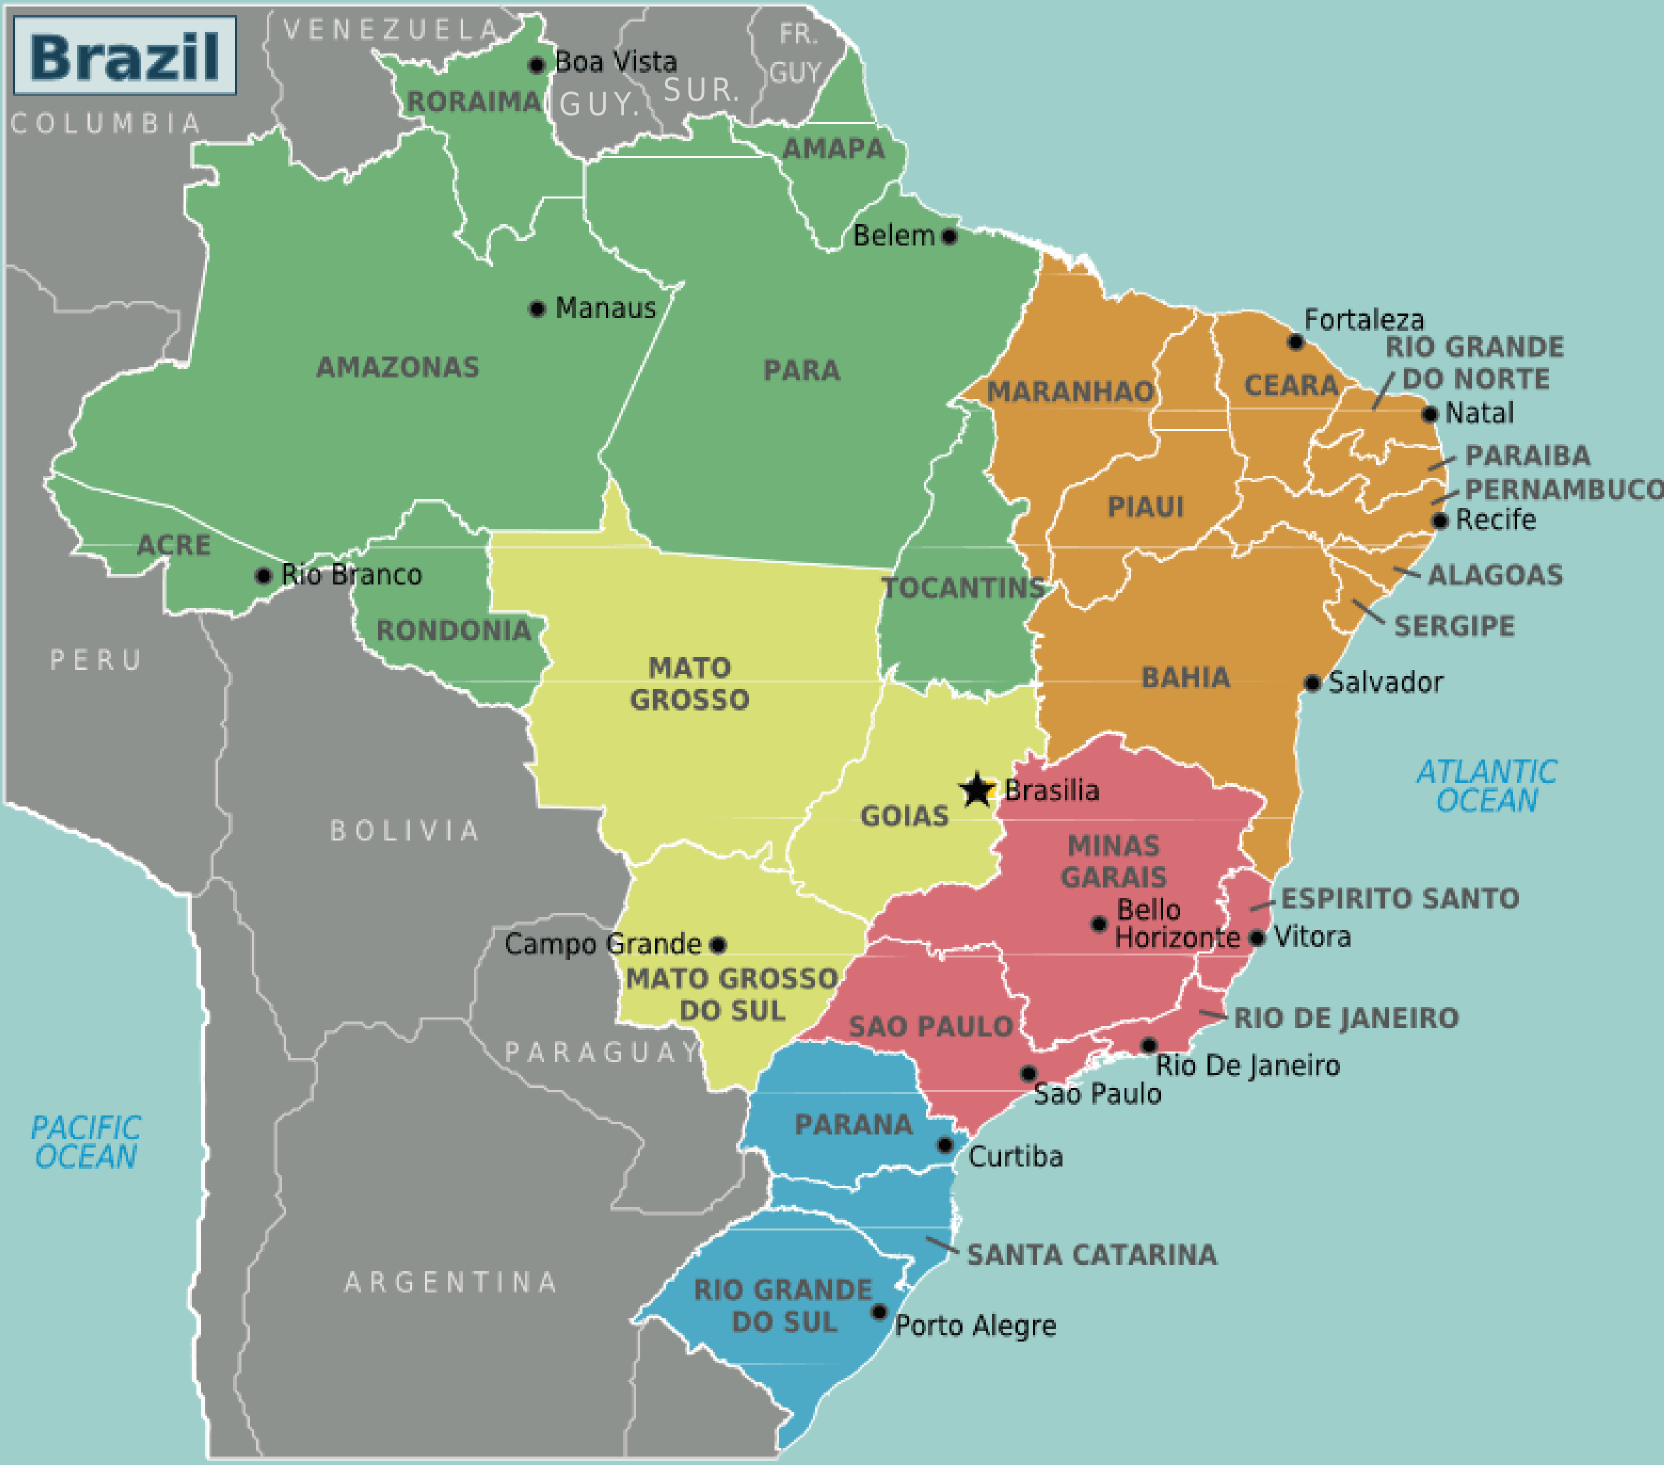 Brazil Regions Mapsofnet - Brazil map